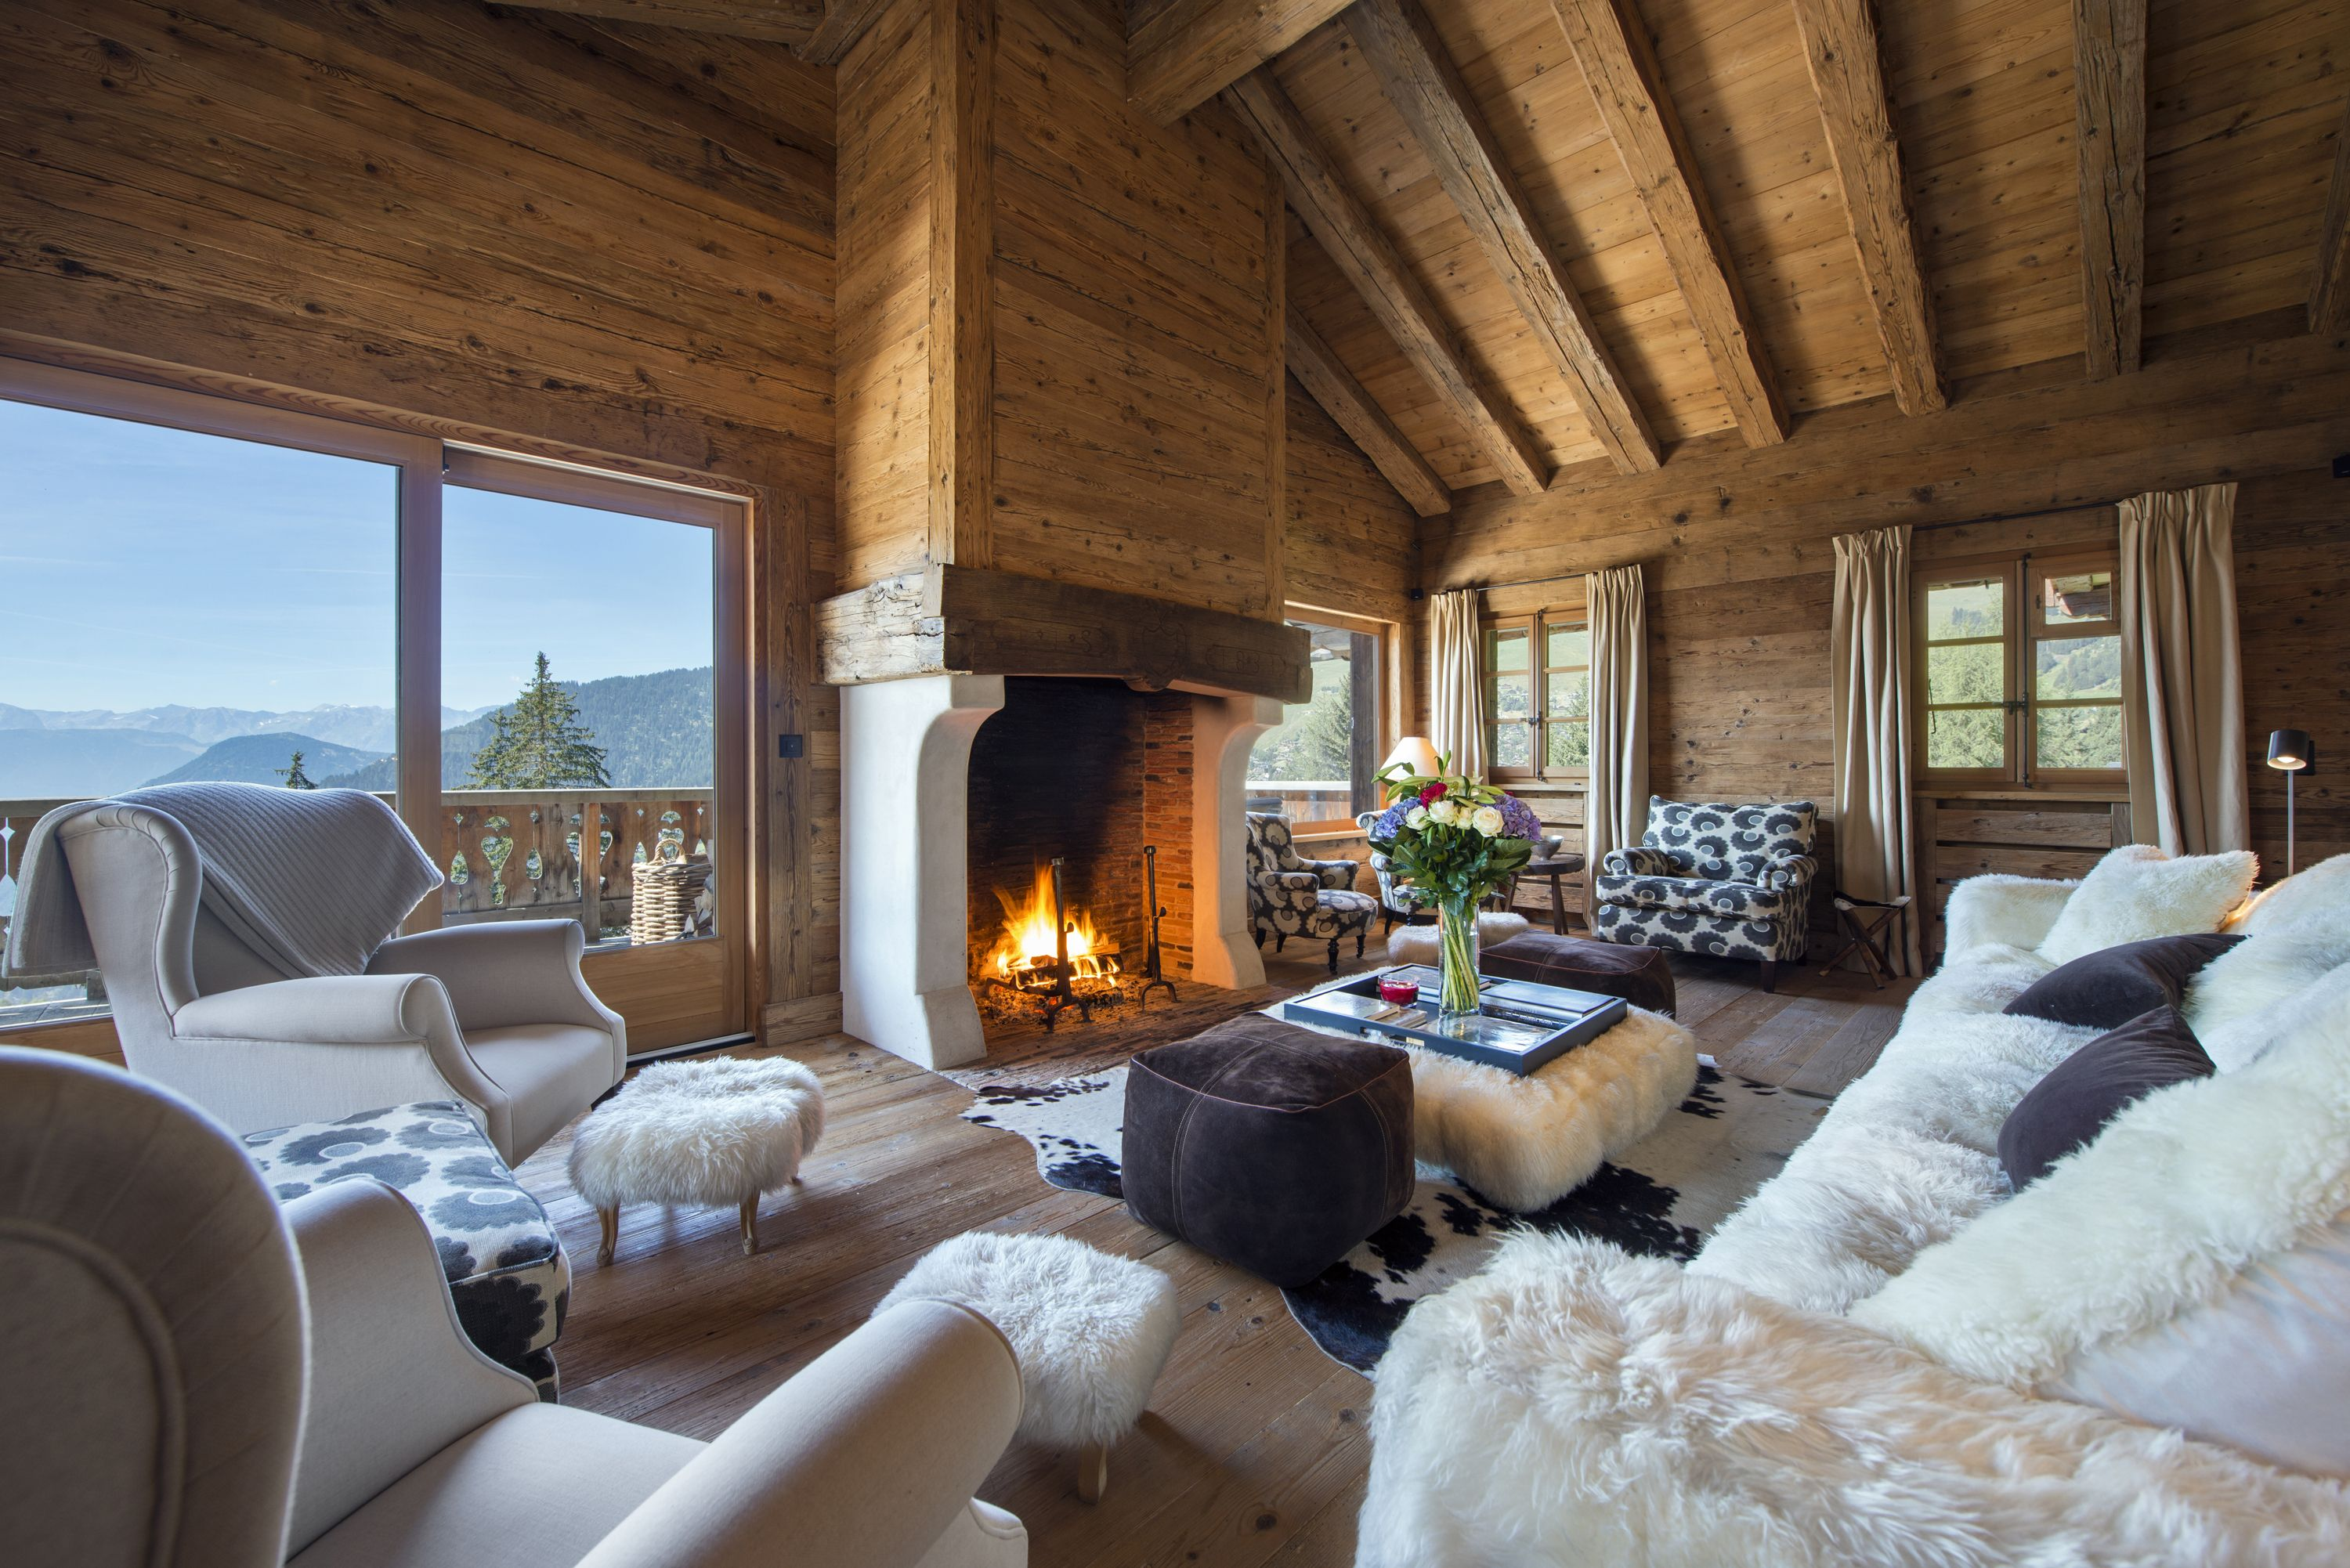 Cozy Chalet Chic: Winter may be coming but it\u0027s not all bad. Think ...